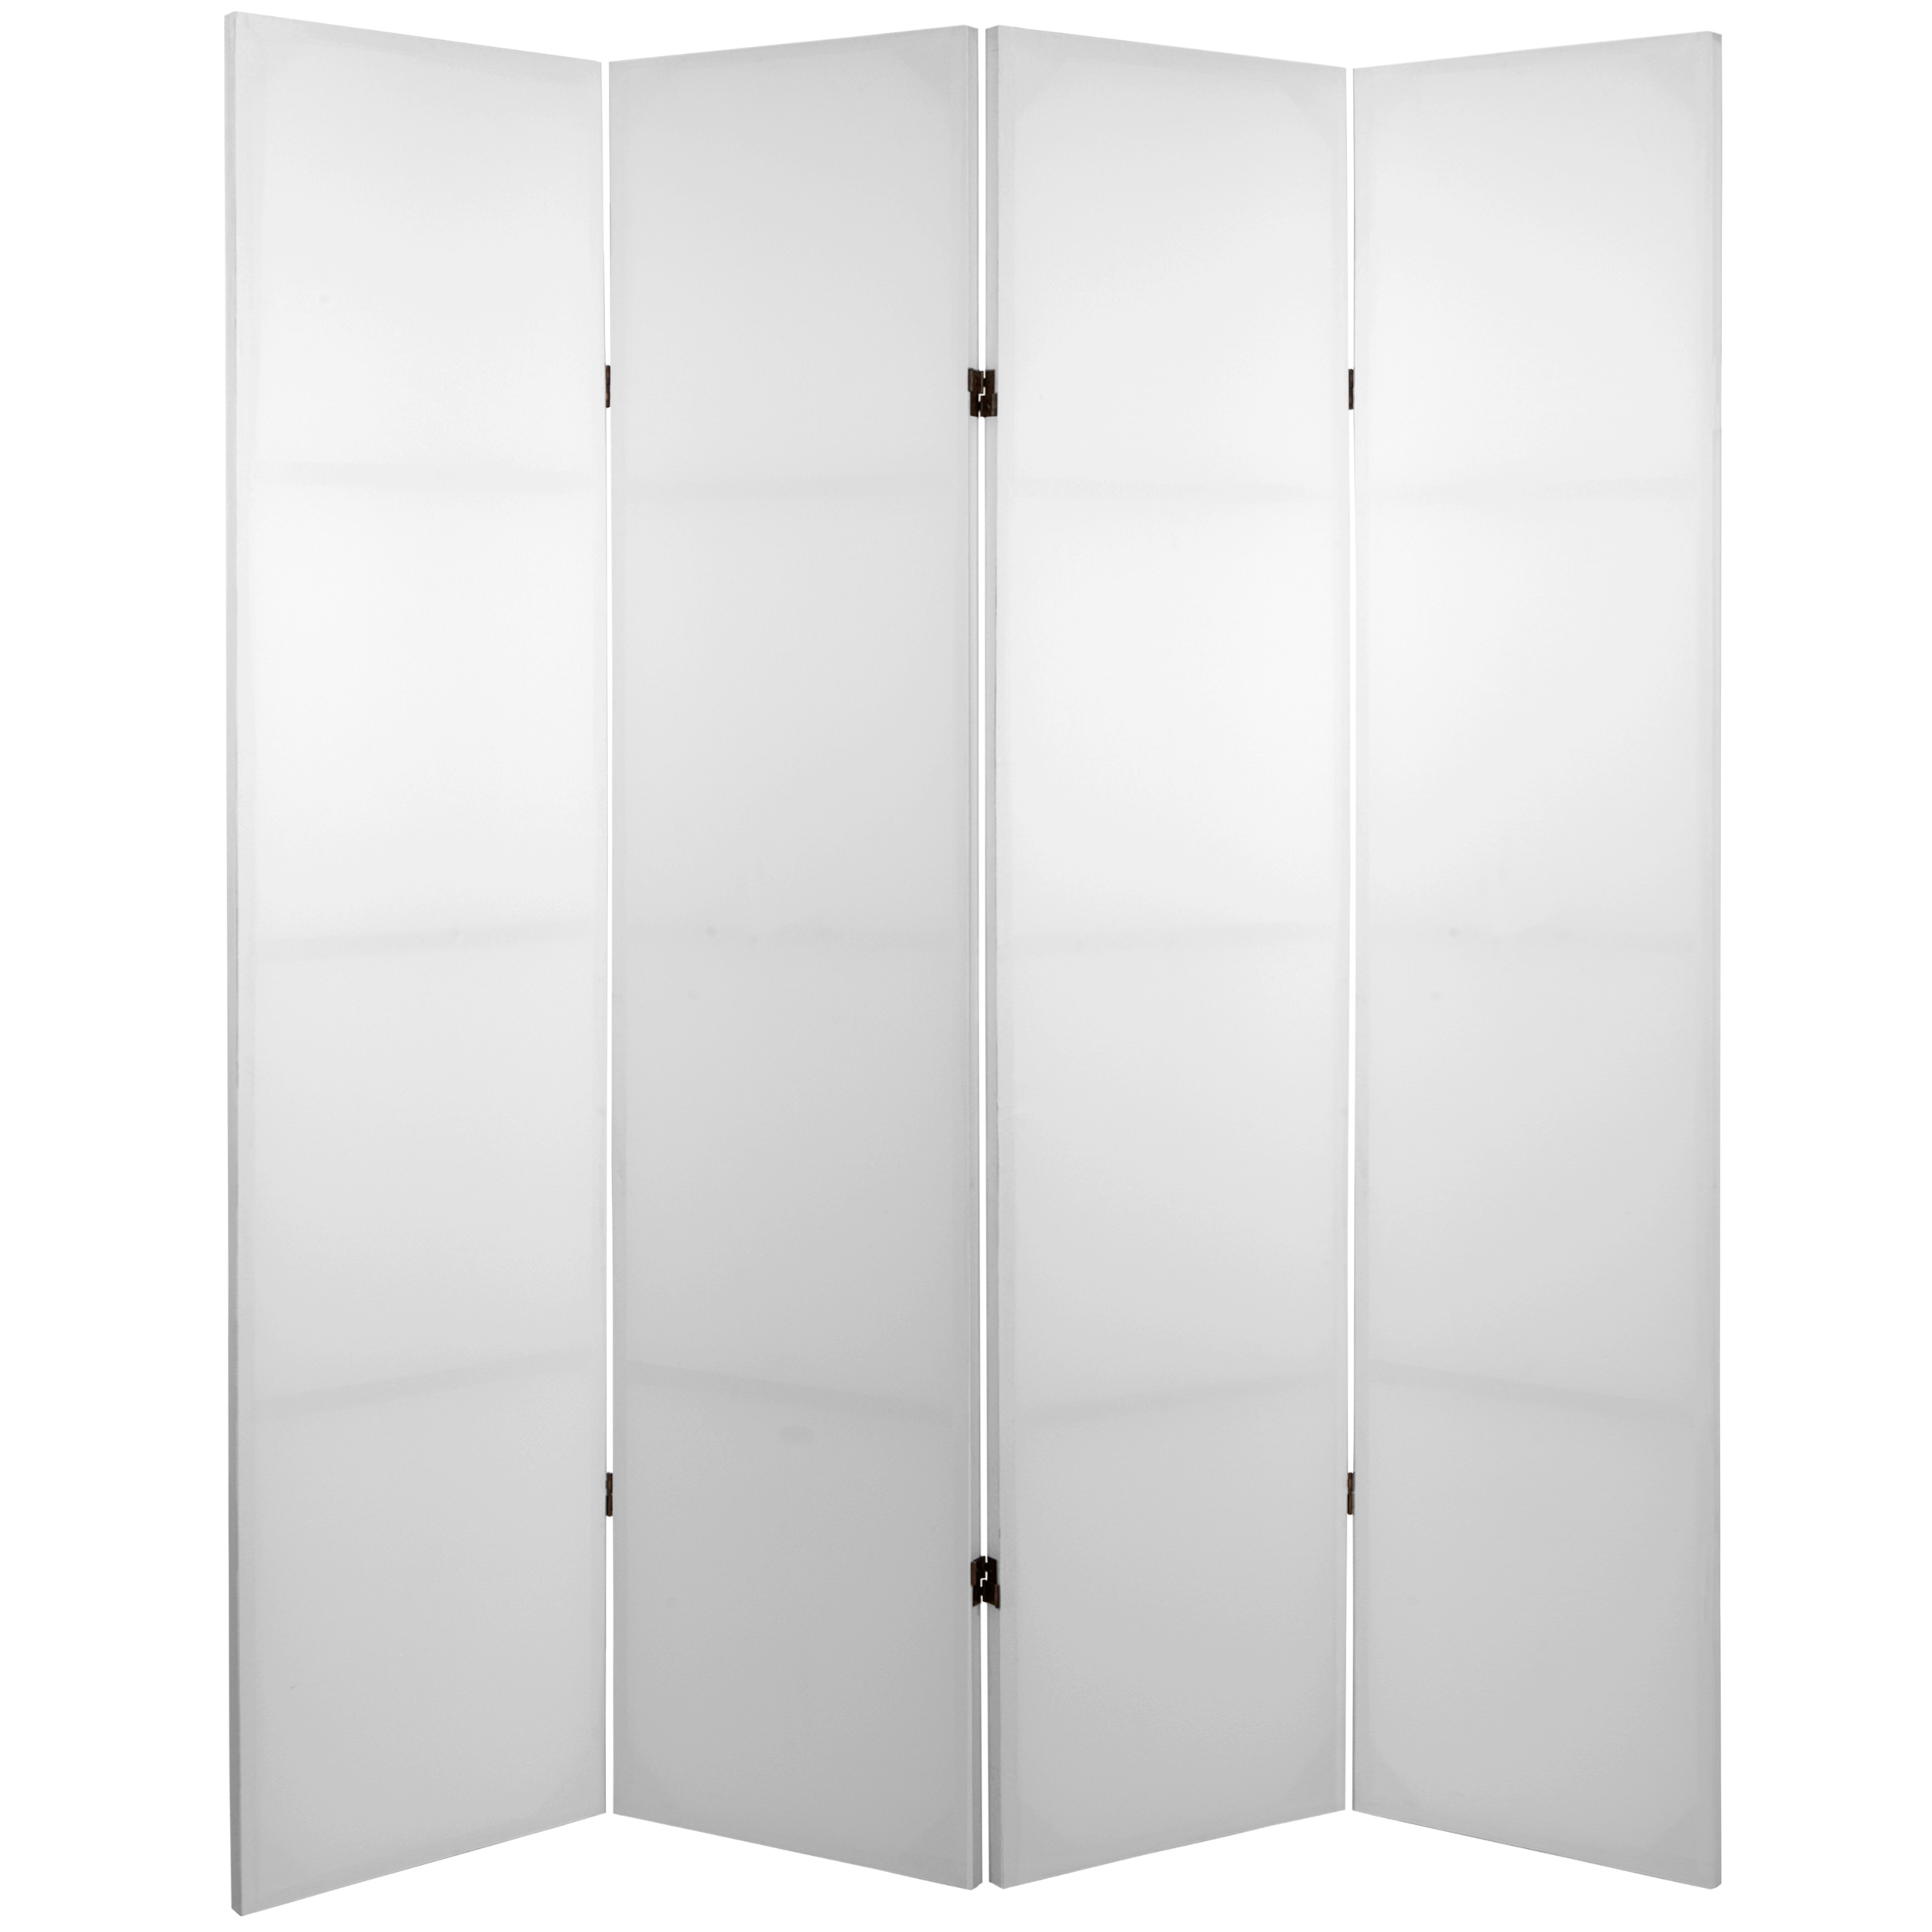 Buy 6 Ft Tall Do It Yourself Double Sided Canvas Room Divider